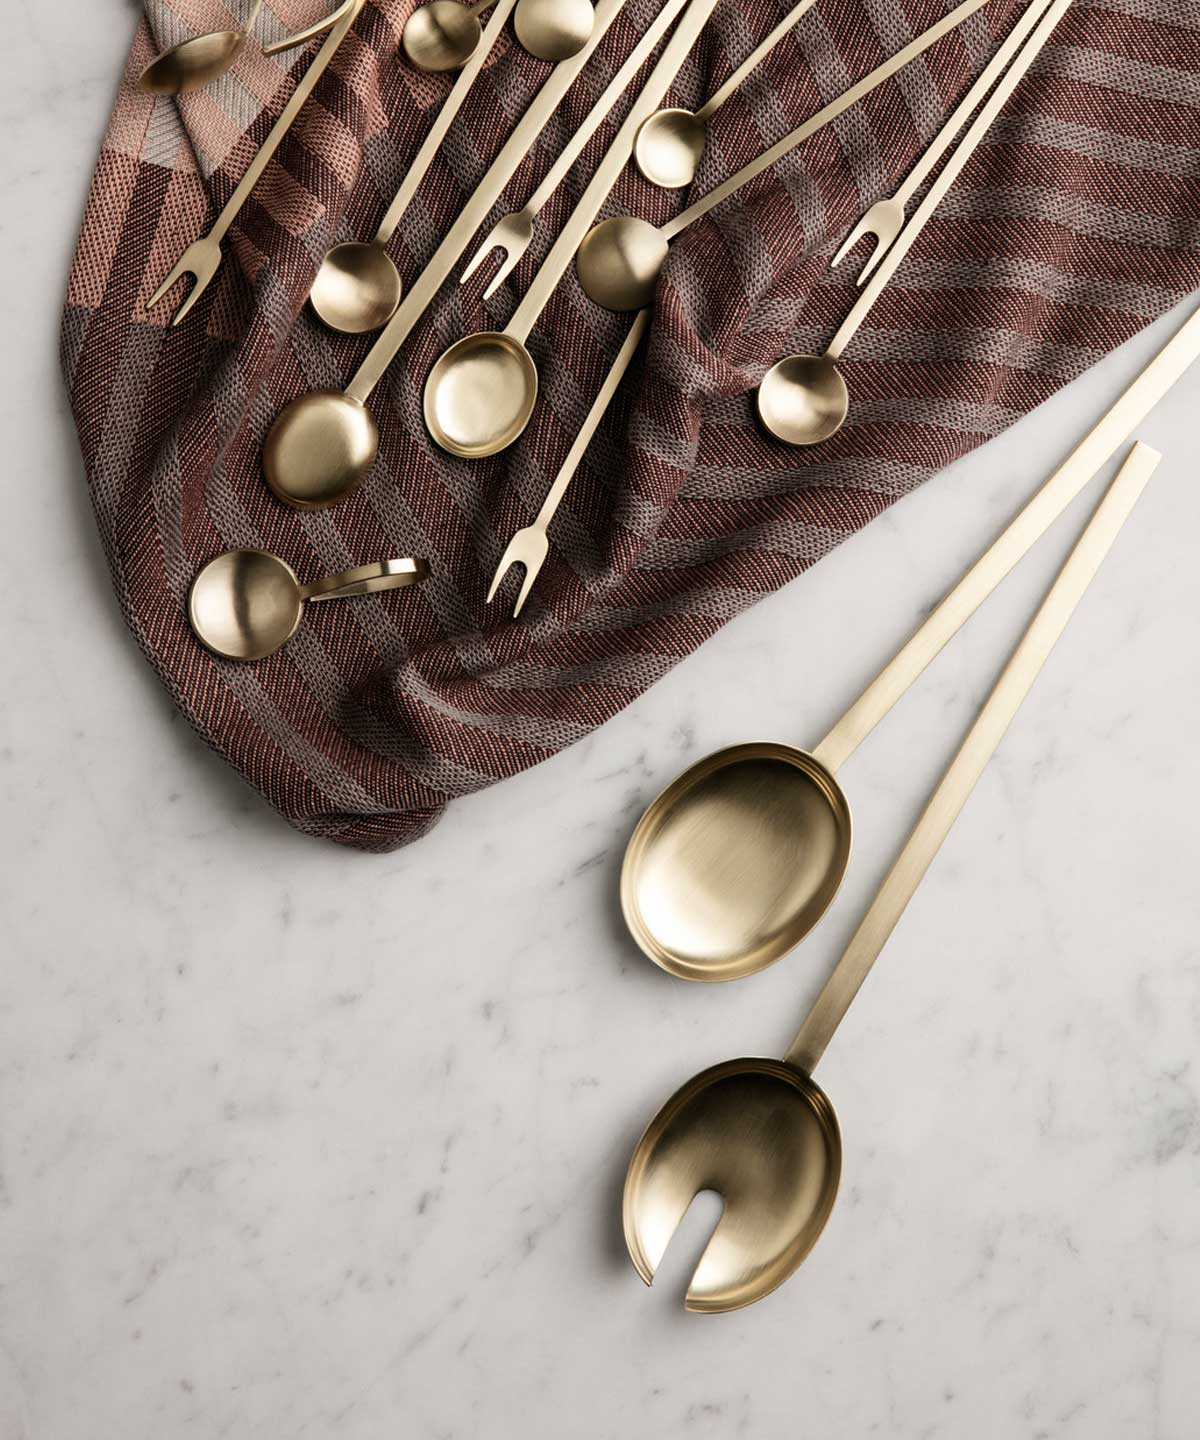 Fein Kitchen Tools